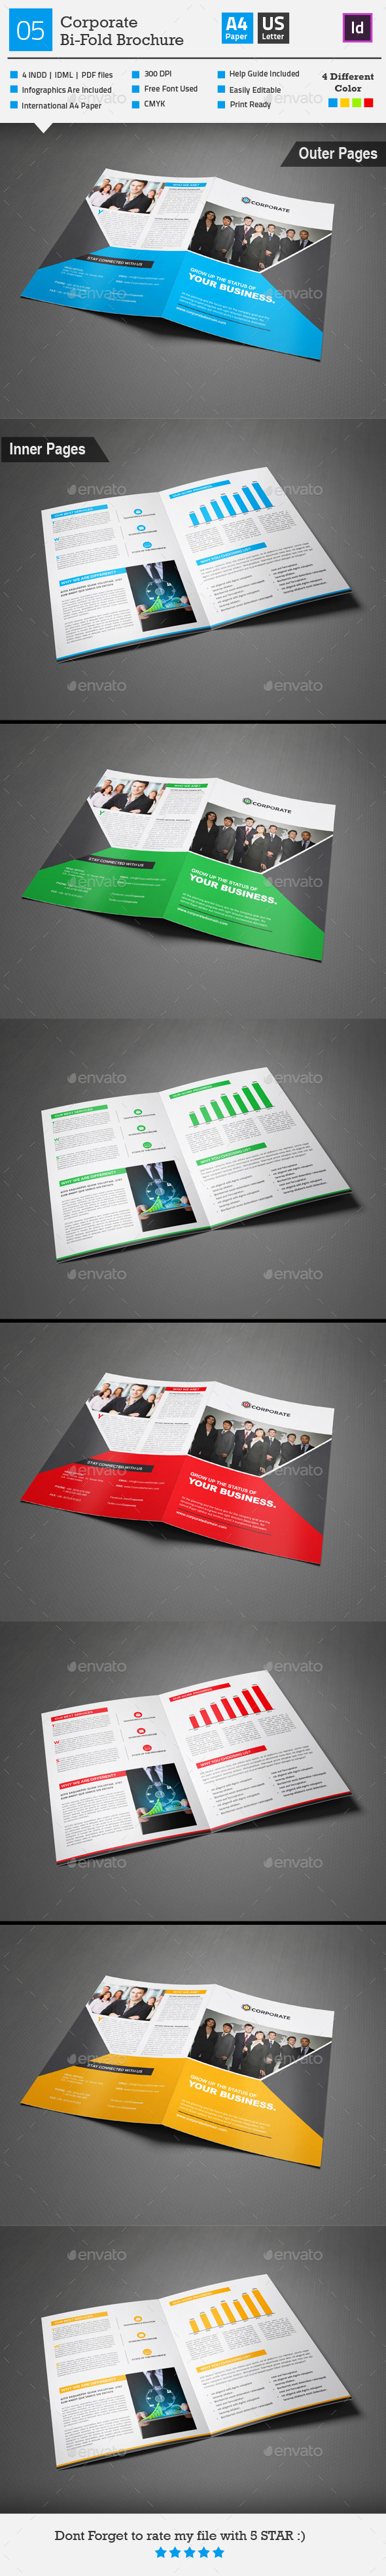 GraphicRiver Corporate Bi-fold Brochure 05 9195245